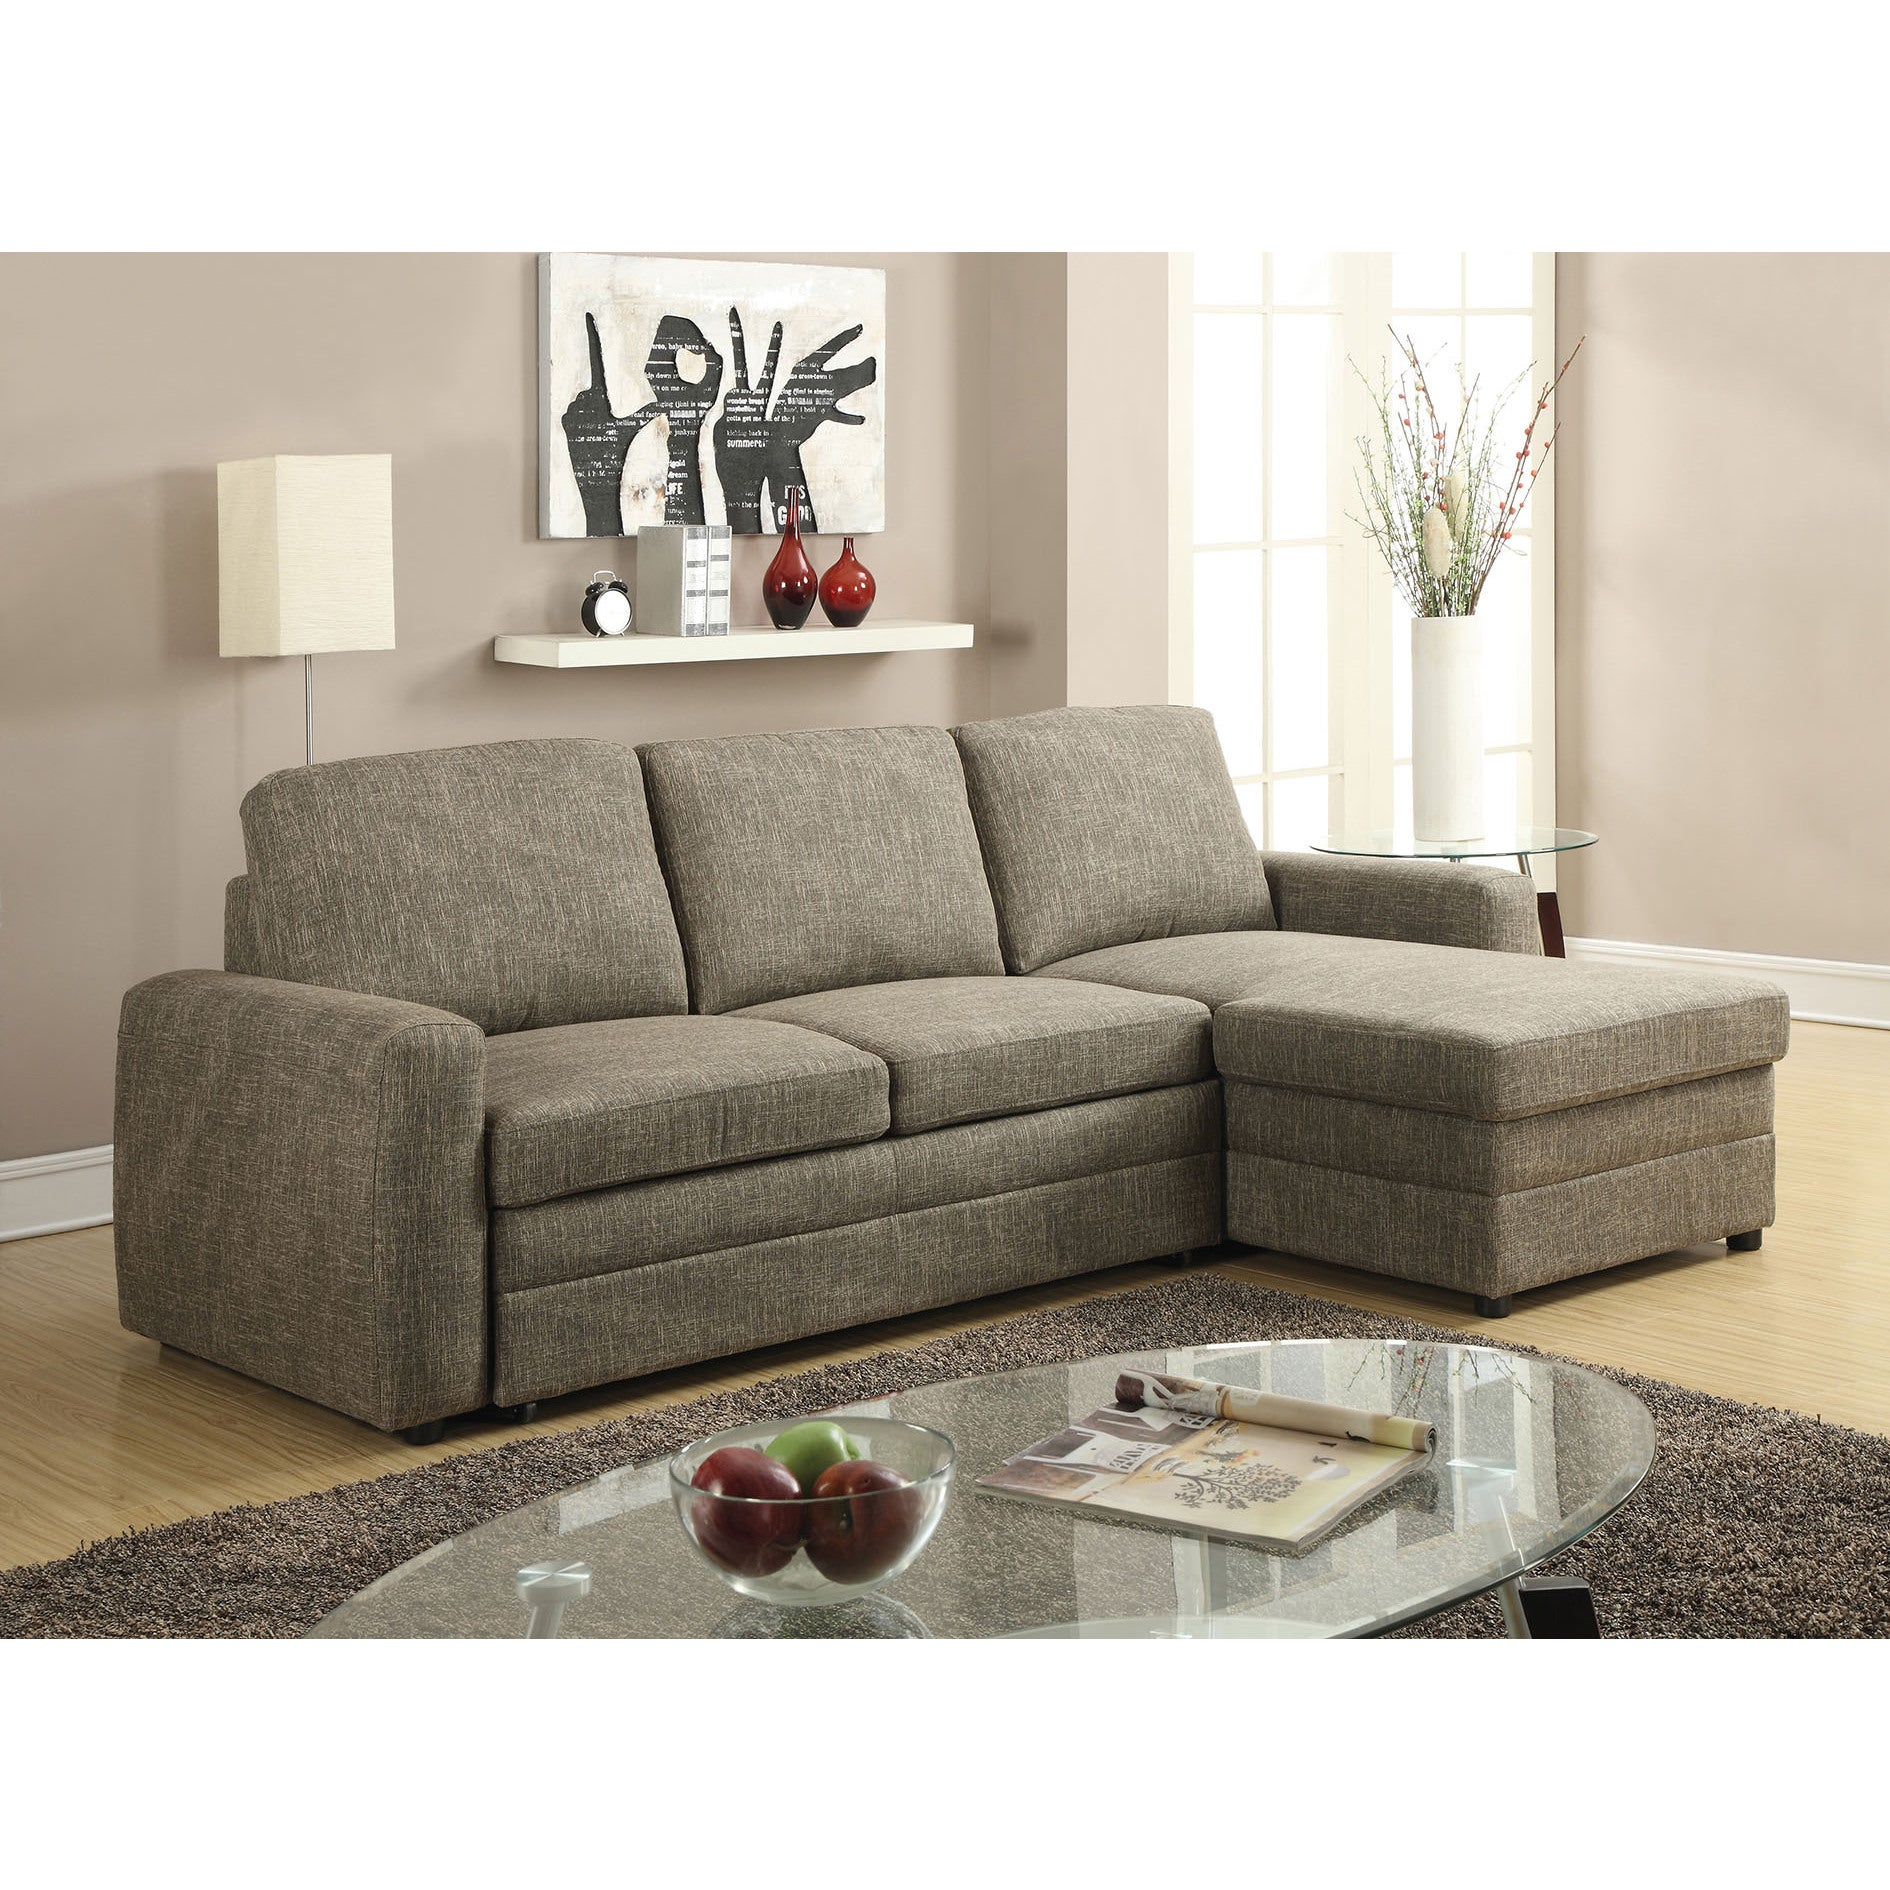 Derwyn Sectional Sofa With Pull Out Bed Light Brown Linen Free Shipping Today 12647775